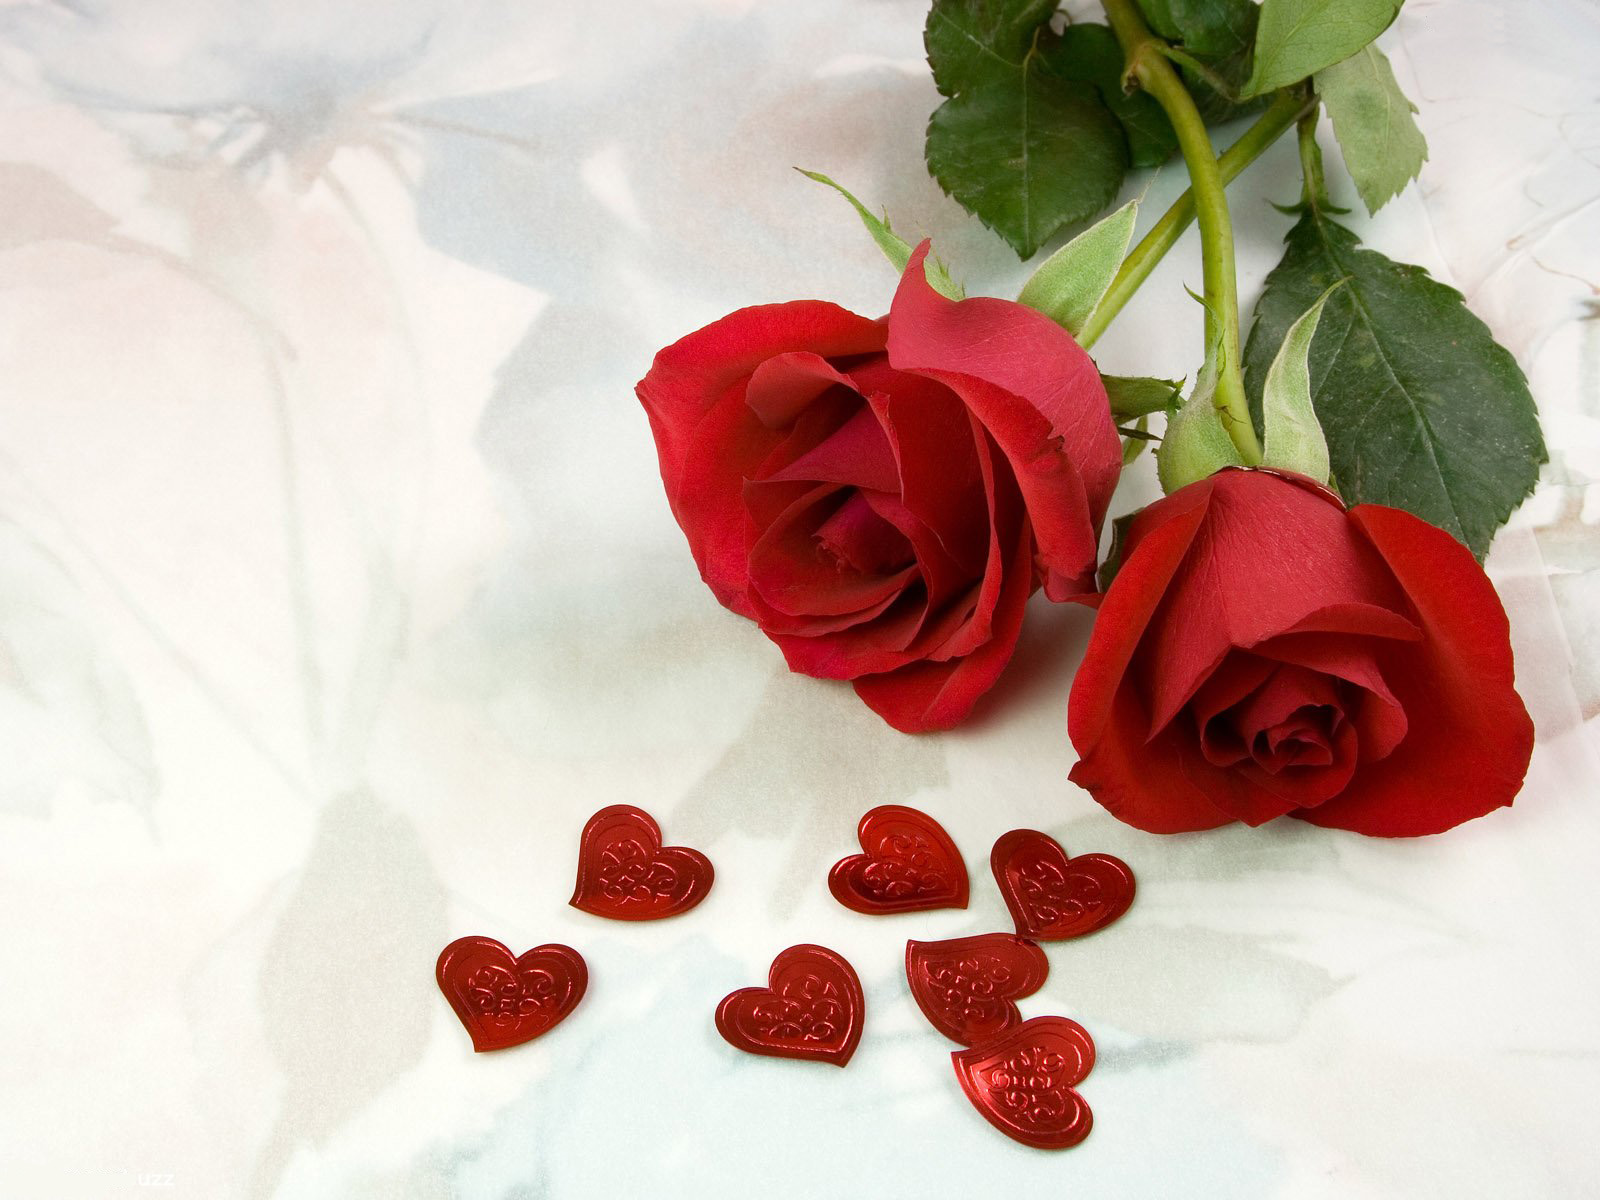 Quality wallpapers beautiful rose flowers pictures - Beautiful rose wallpaper ...